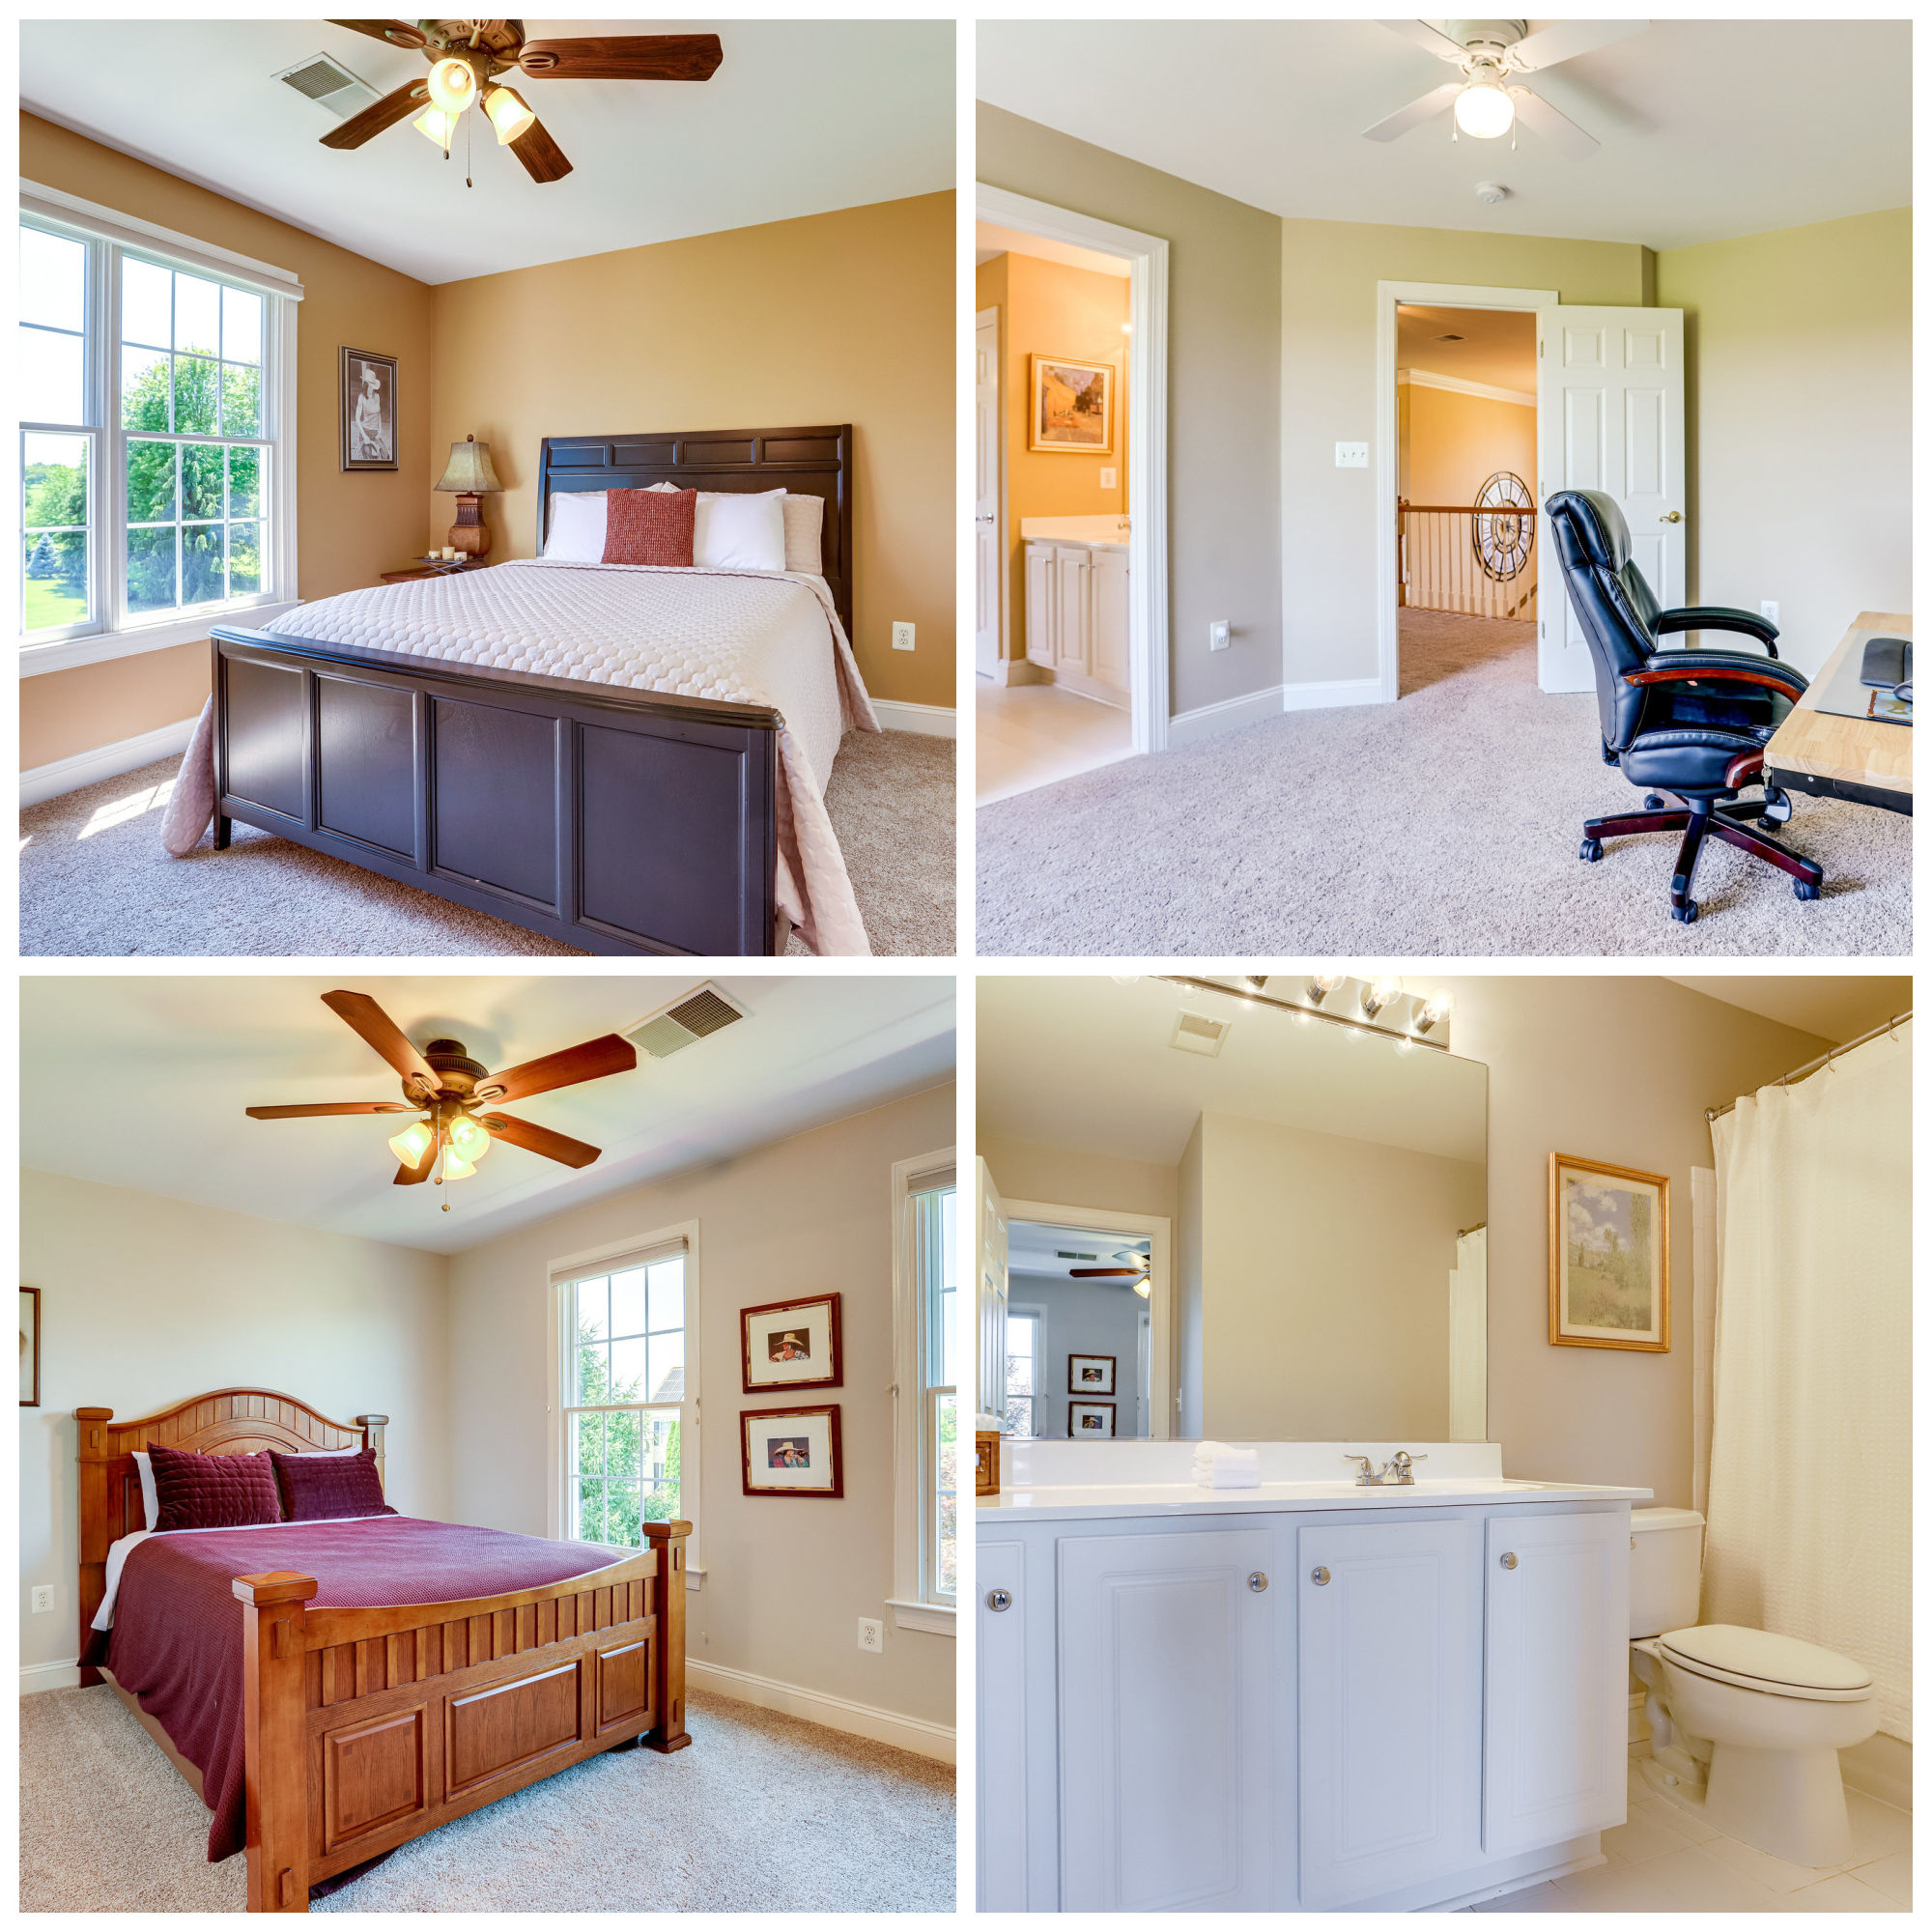 42259 Big Springs Ct, Leesburg- Additional Bedrooms and Bath